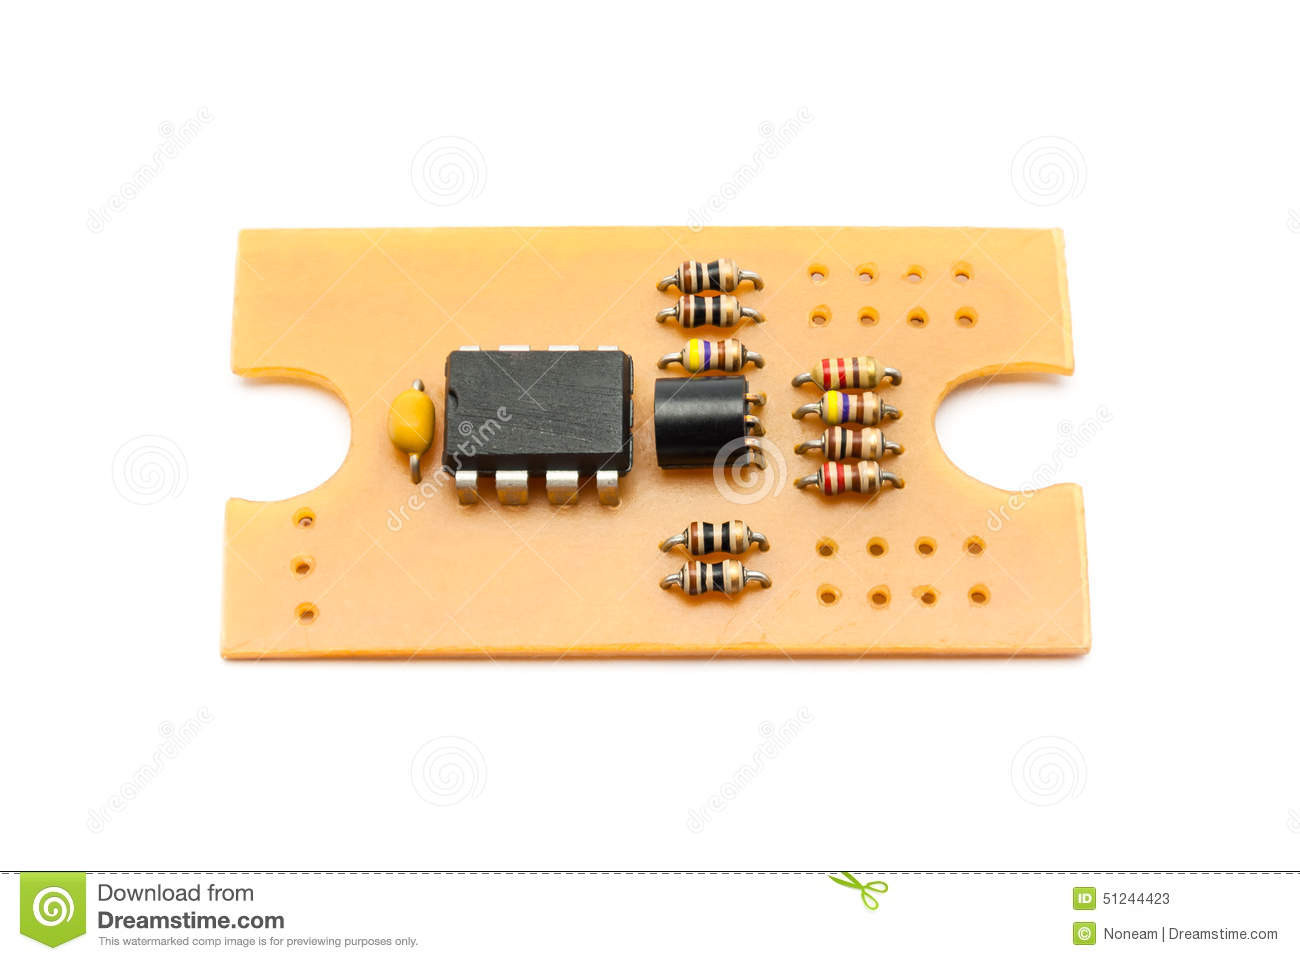 hight resolution of homemade circuit board with components